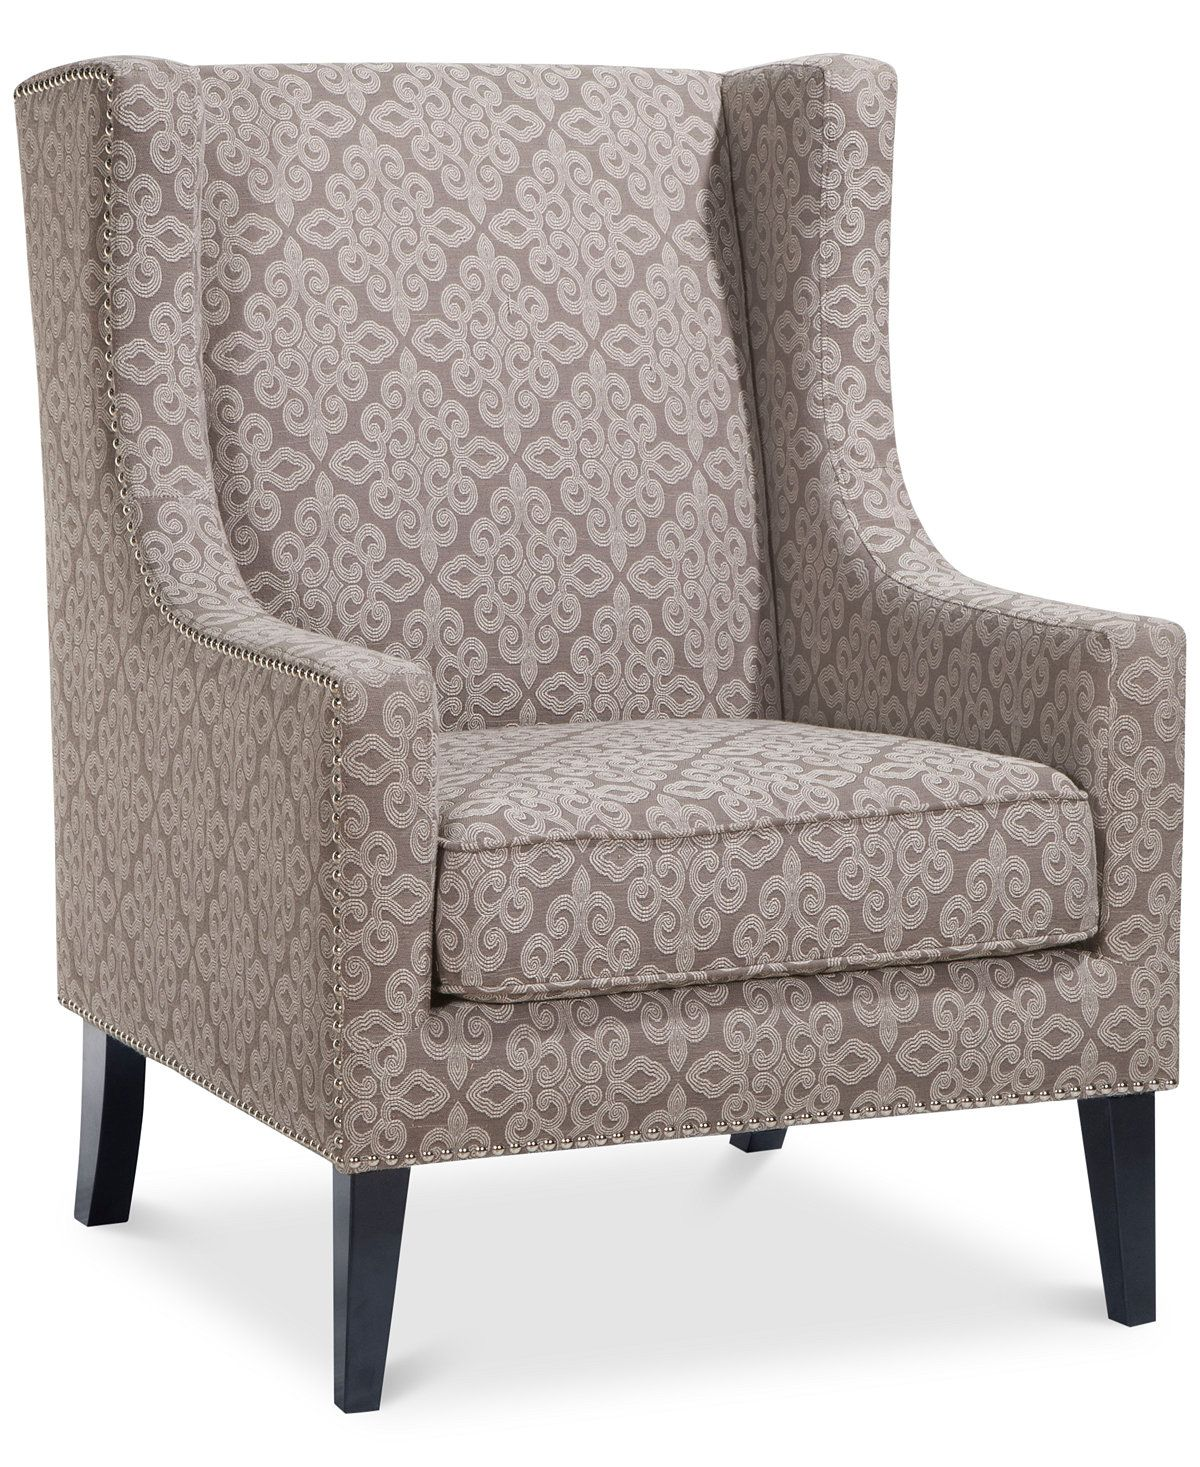 sloane fabric accent chair quick ship  furniture  macy's  fort  - sloane fabric accent chair quick ship  furniture  macy's